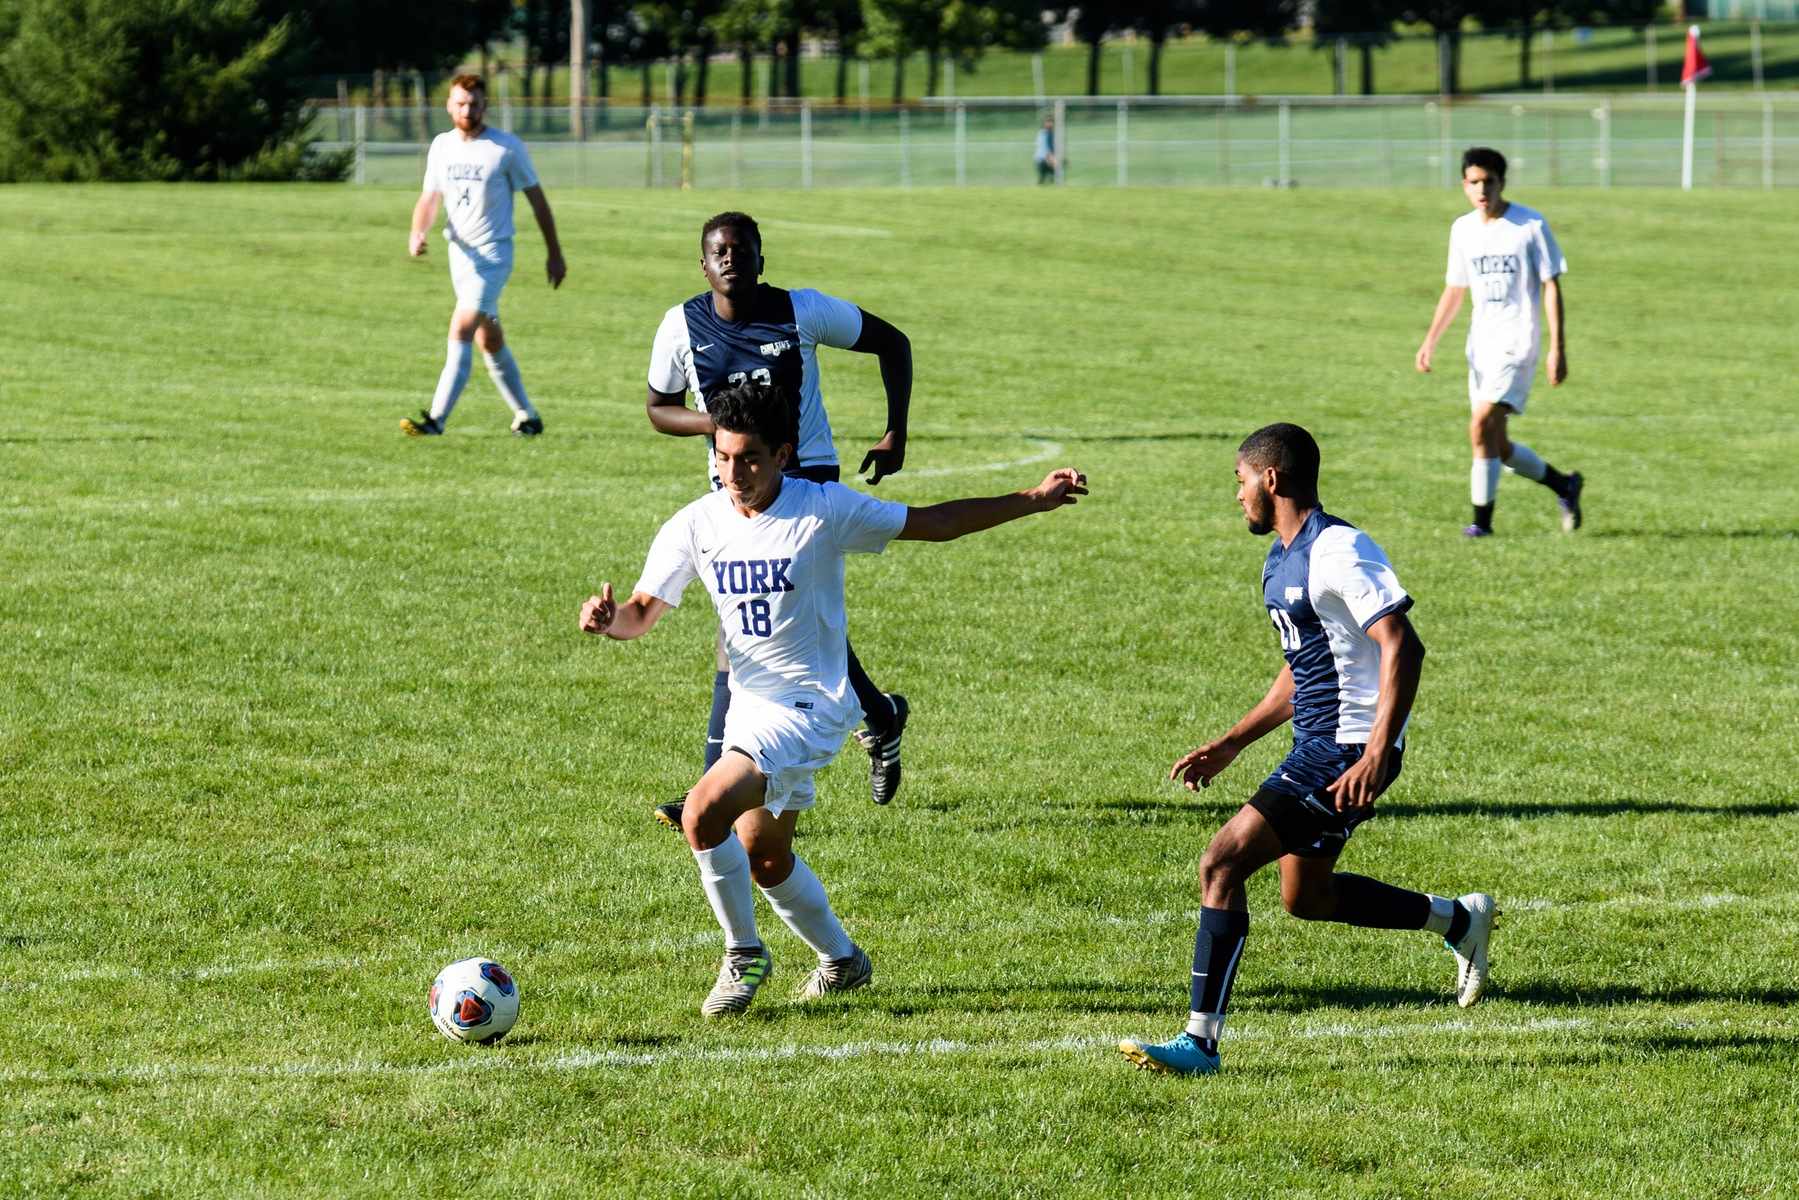 Freshman Carlos Robles-Flores, who scored twice in the 4-2 win, shoots in the first half.